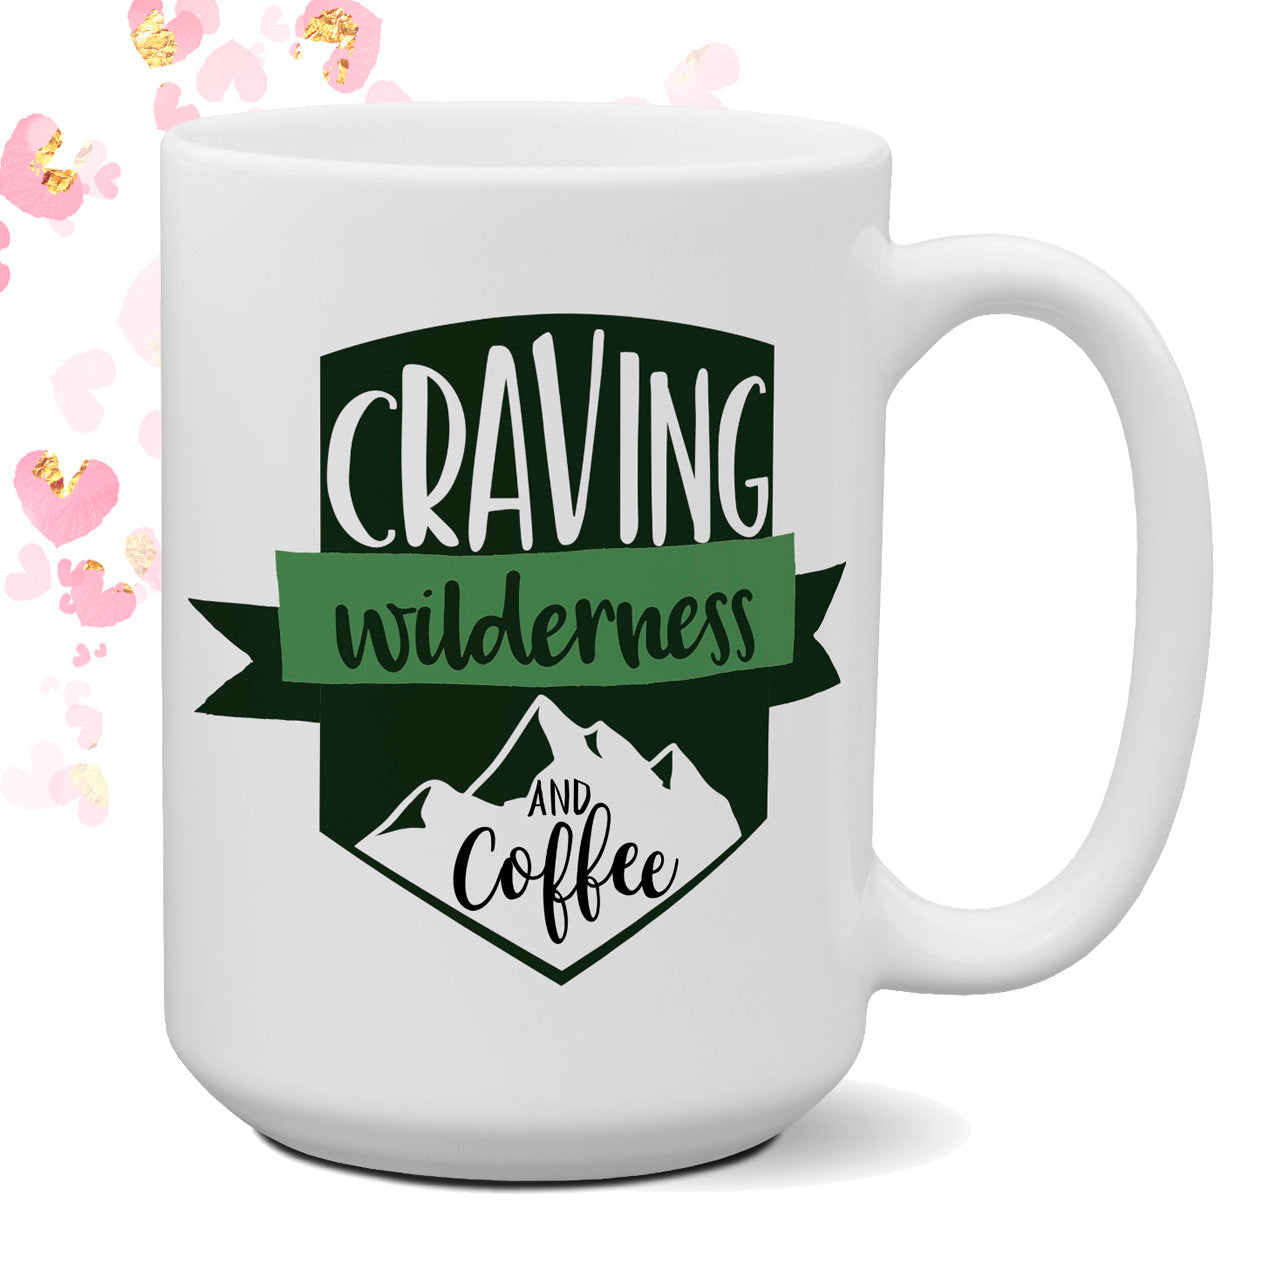 Craving Wilderness 15 oz coffee mug Camper Gift Nature Happy Camper Outdoor Theme Gift for Him